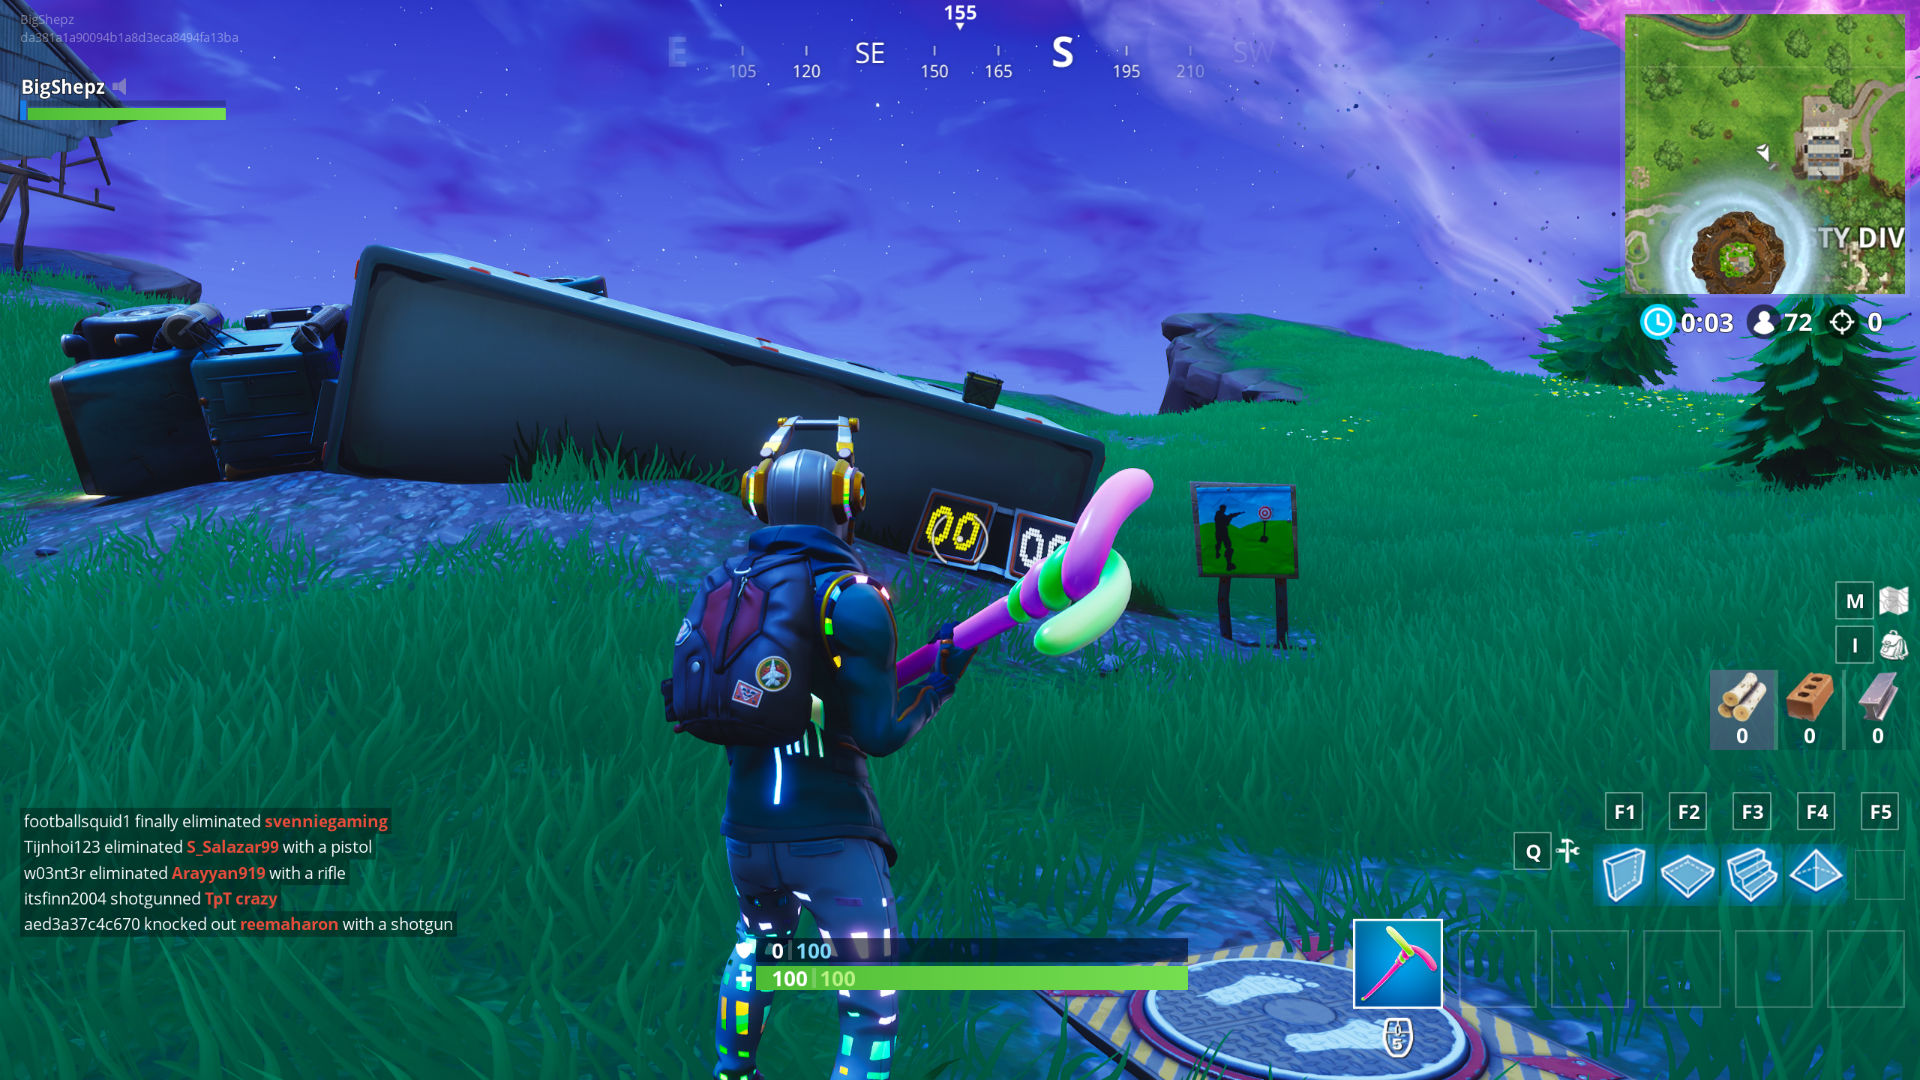 All Fortnite Shooting Galleries Locations: Where To Get A